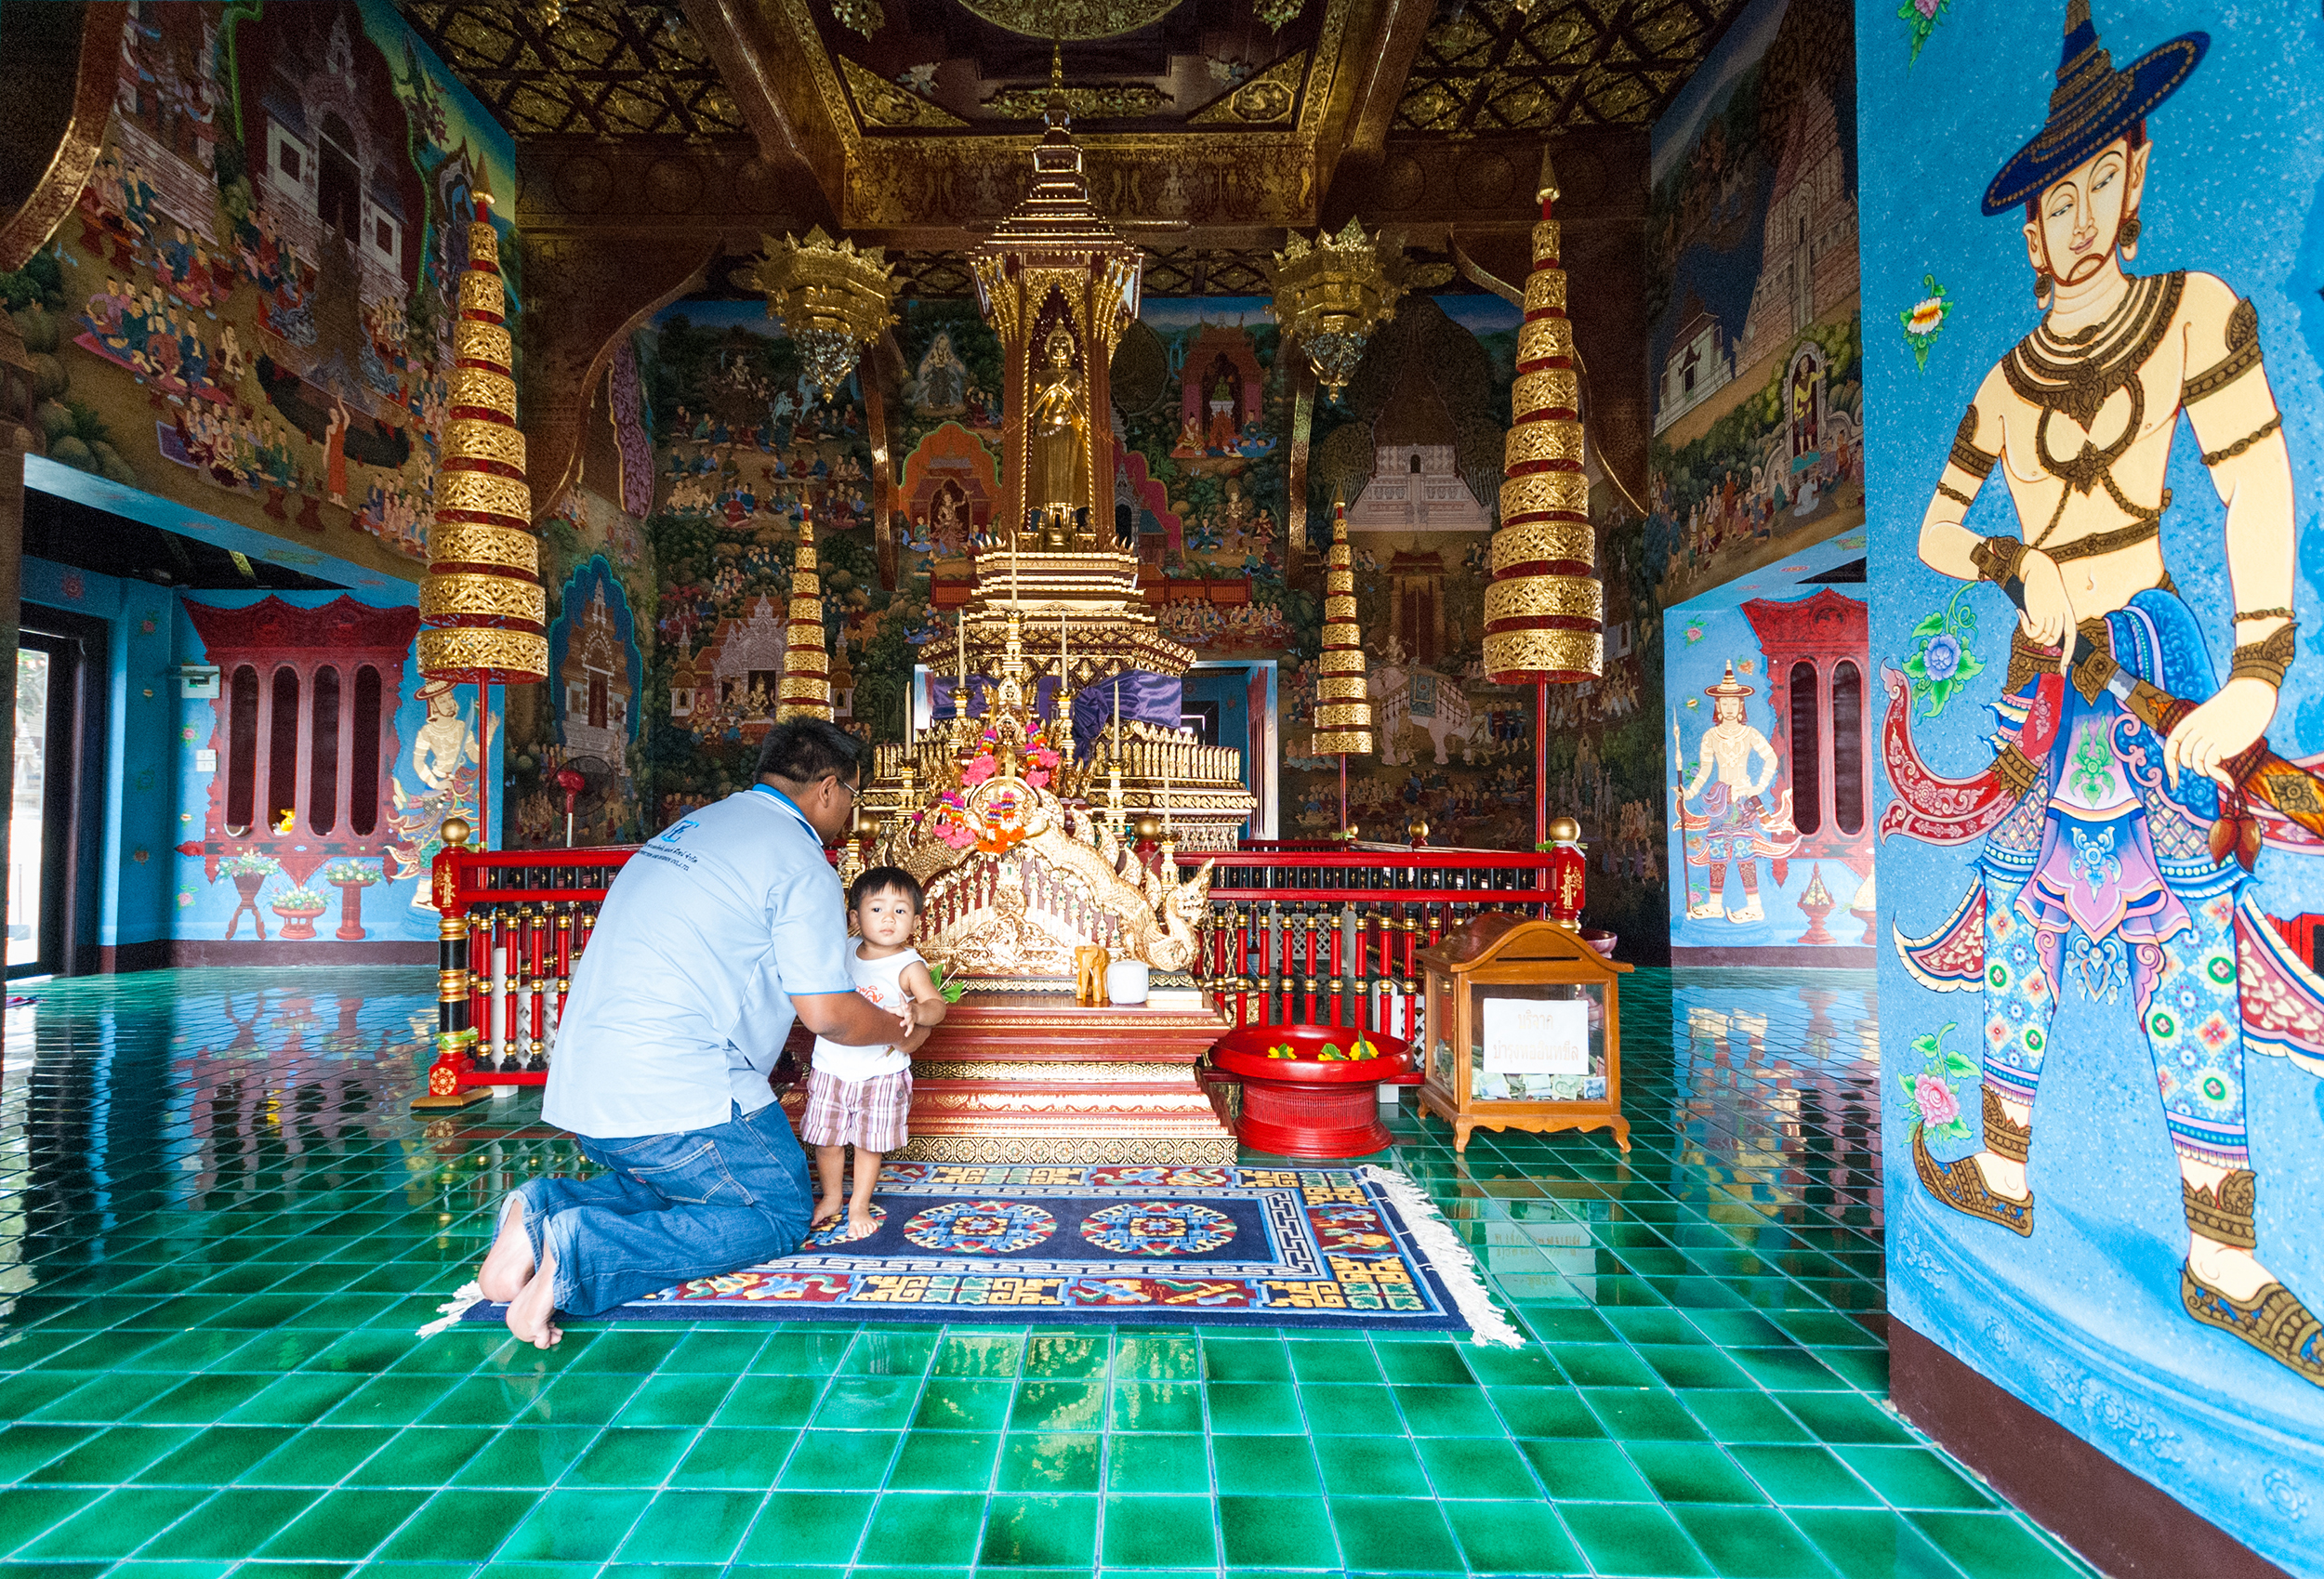 In Wat Chedi Luang temple complex, there is a temple where only men enter, where fathers take their sons to pray. Chiang Mai, Thailand